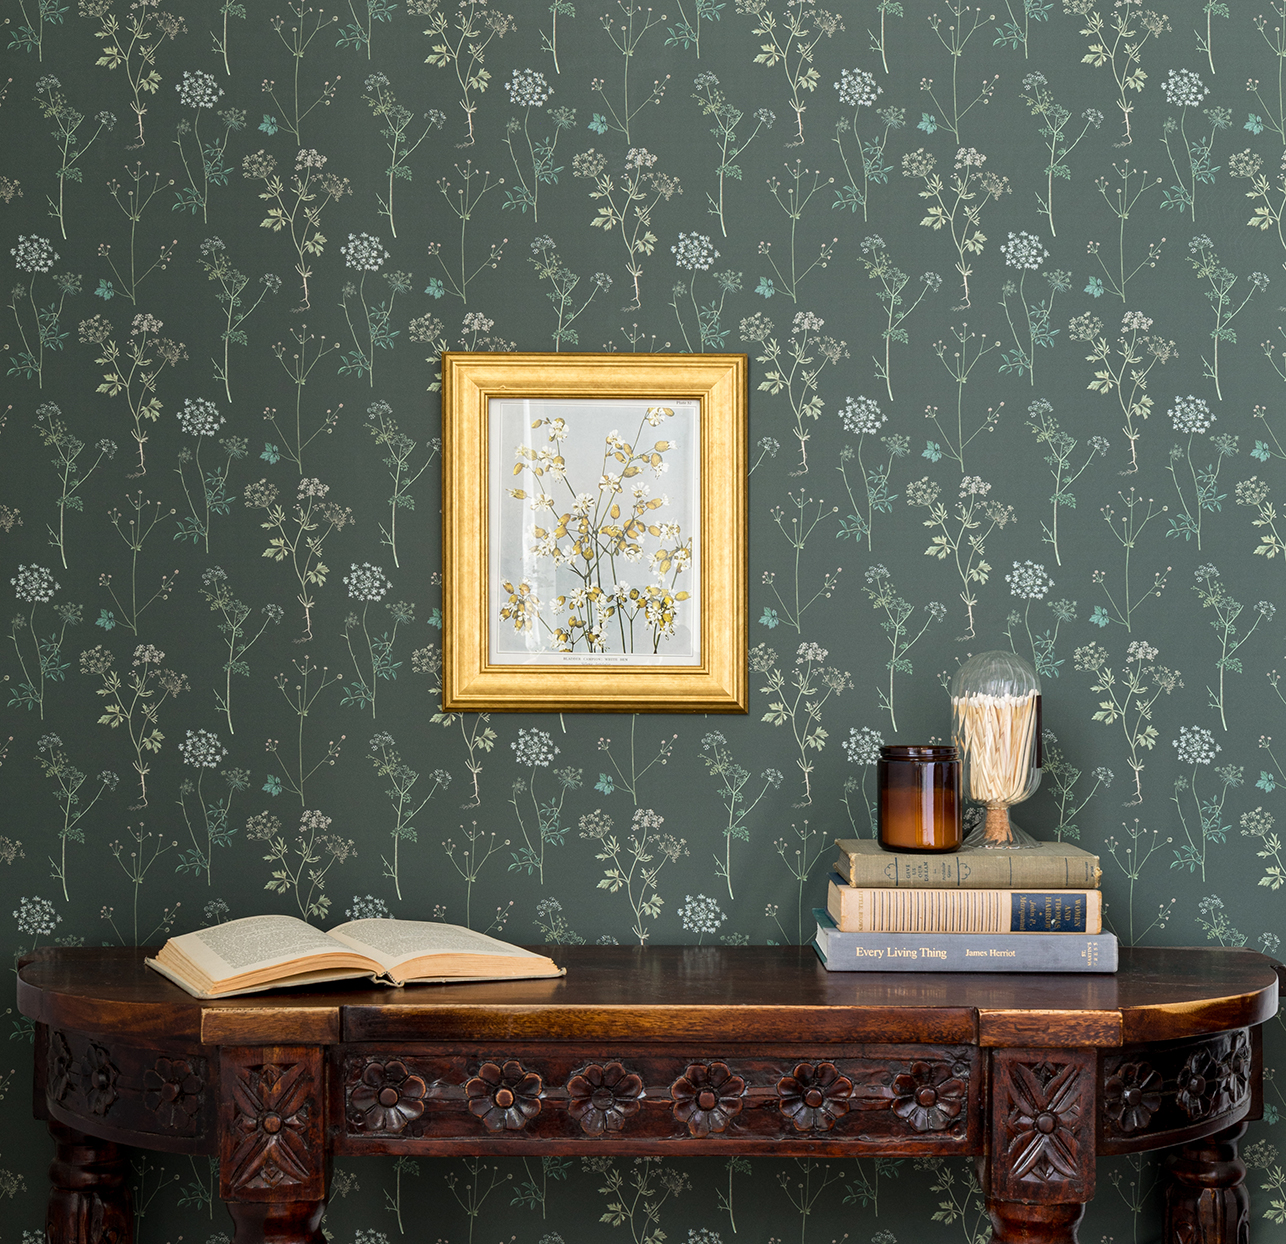 green botanical print wallpaper with framed art and antique table